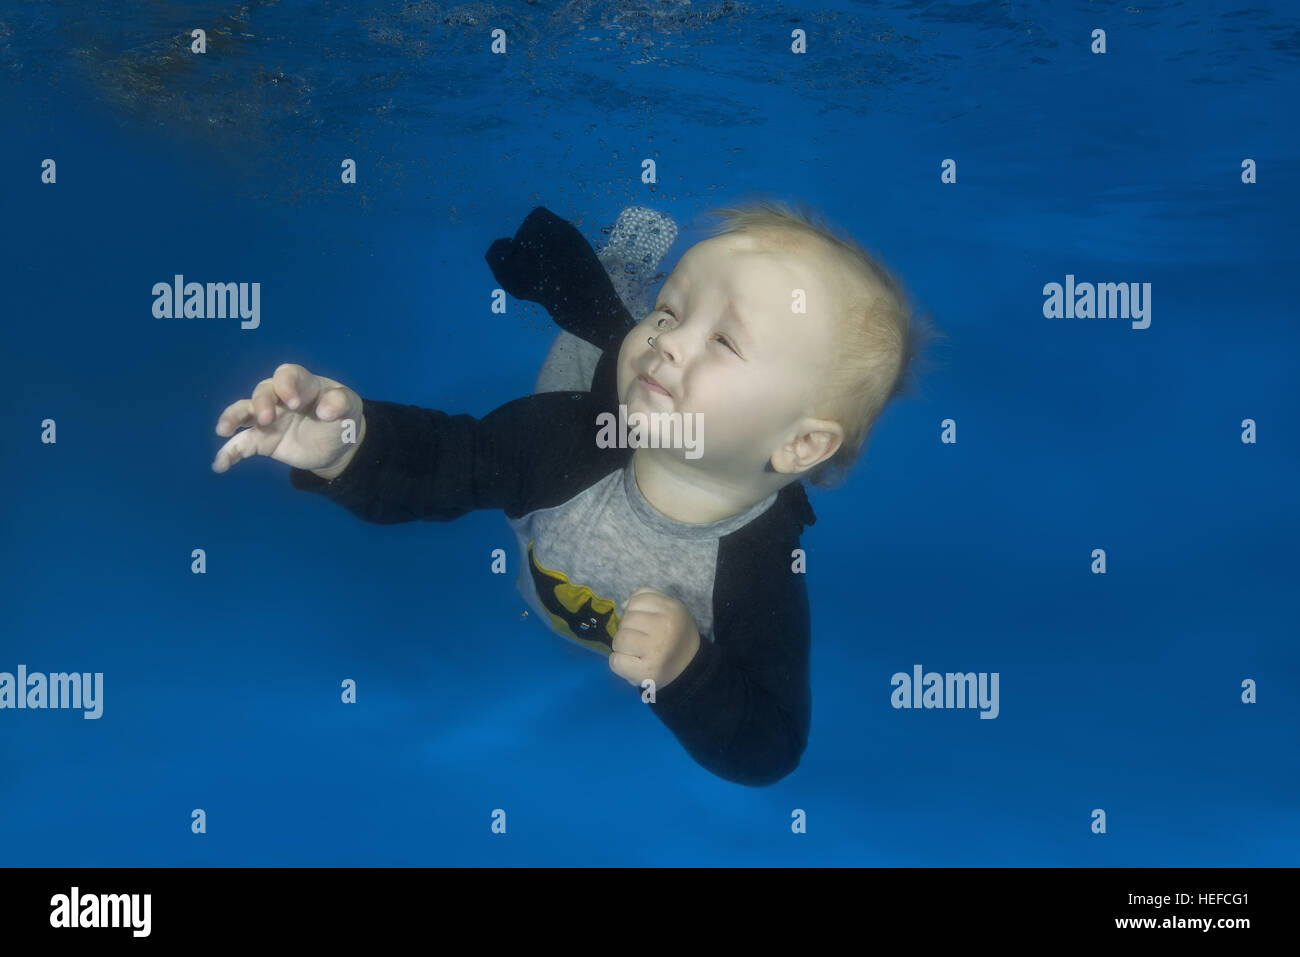 6da07e46bce37 Little boy in a Batman costume posing under the water in the pool ...